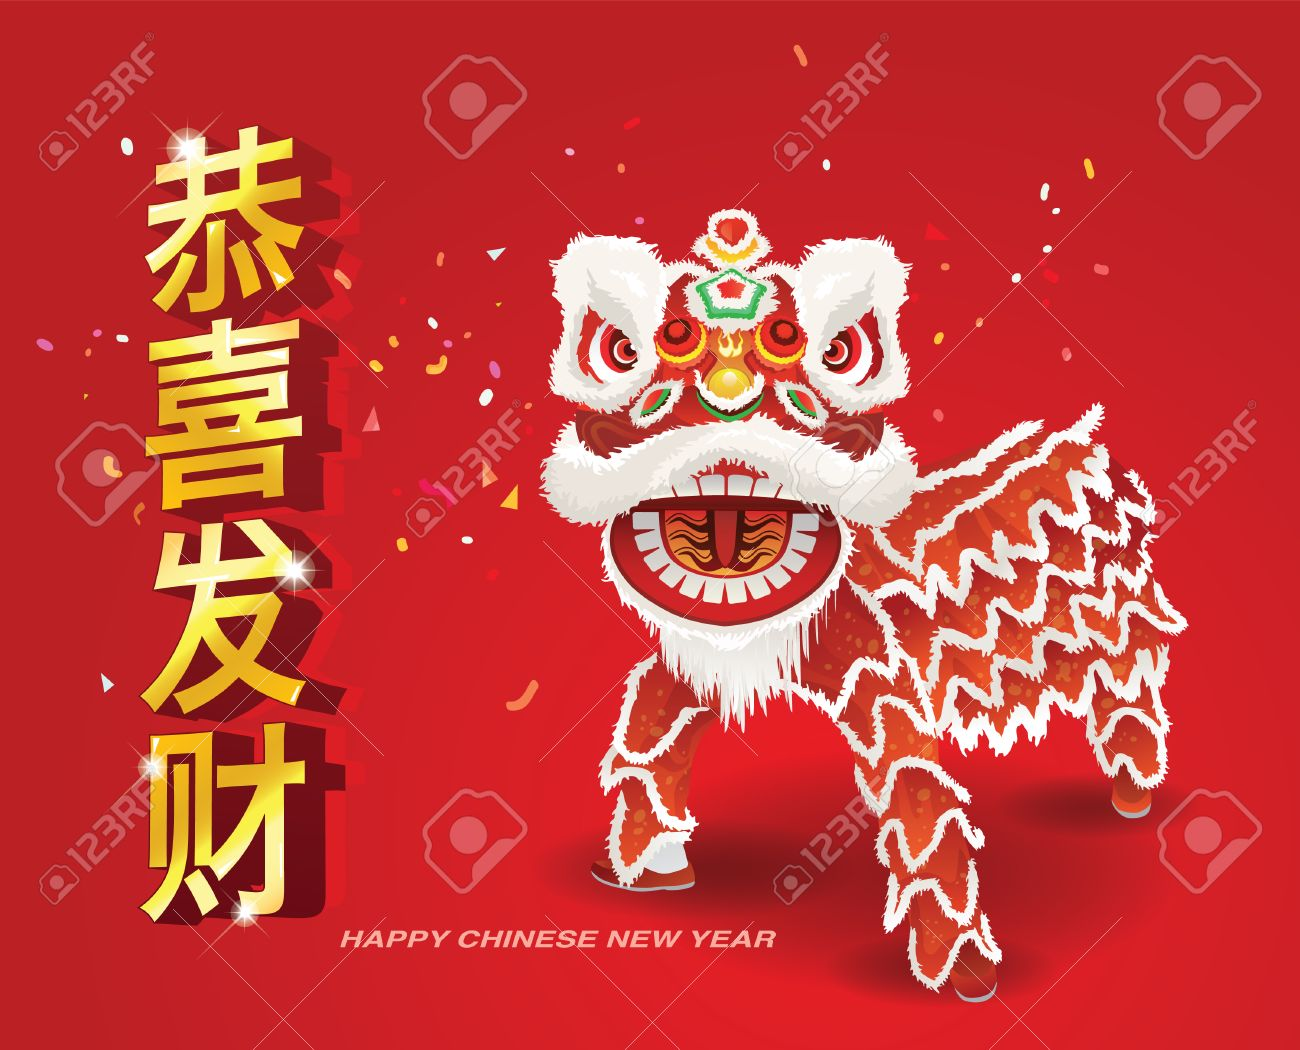 chinese new year background the chinese character gong xi fa cai means may prosperity be